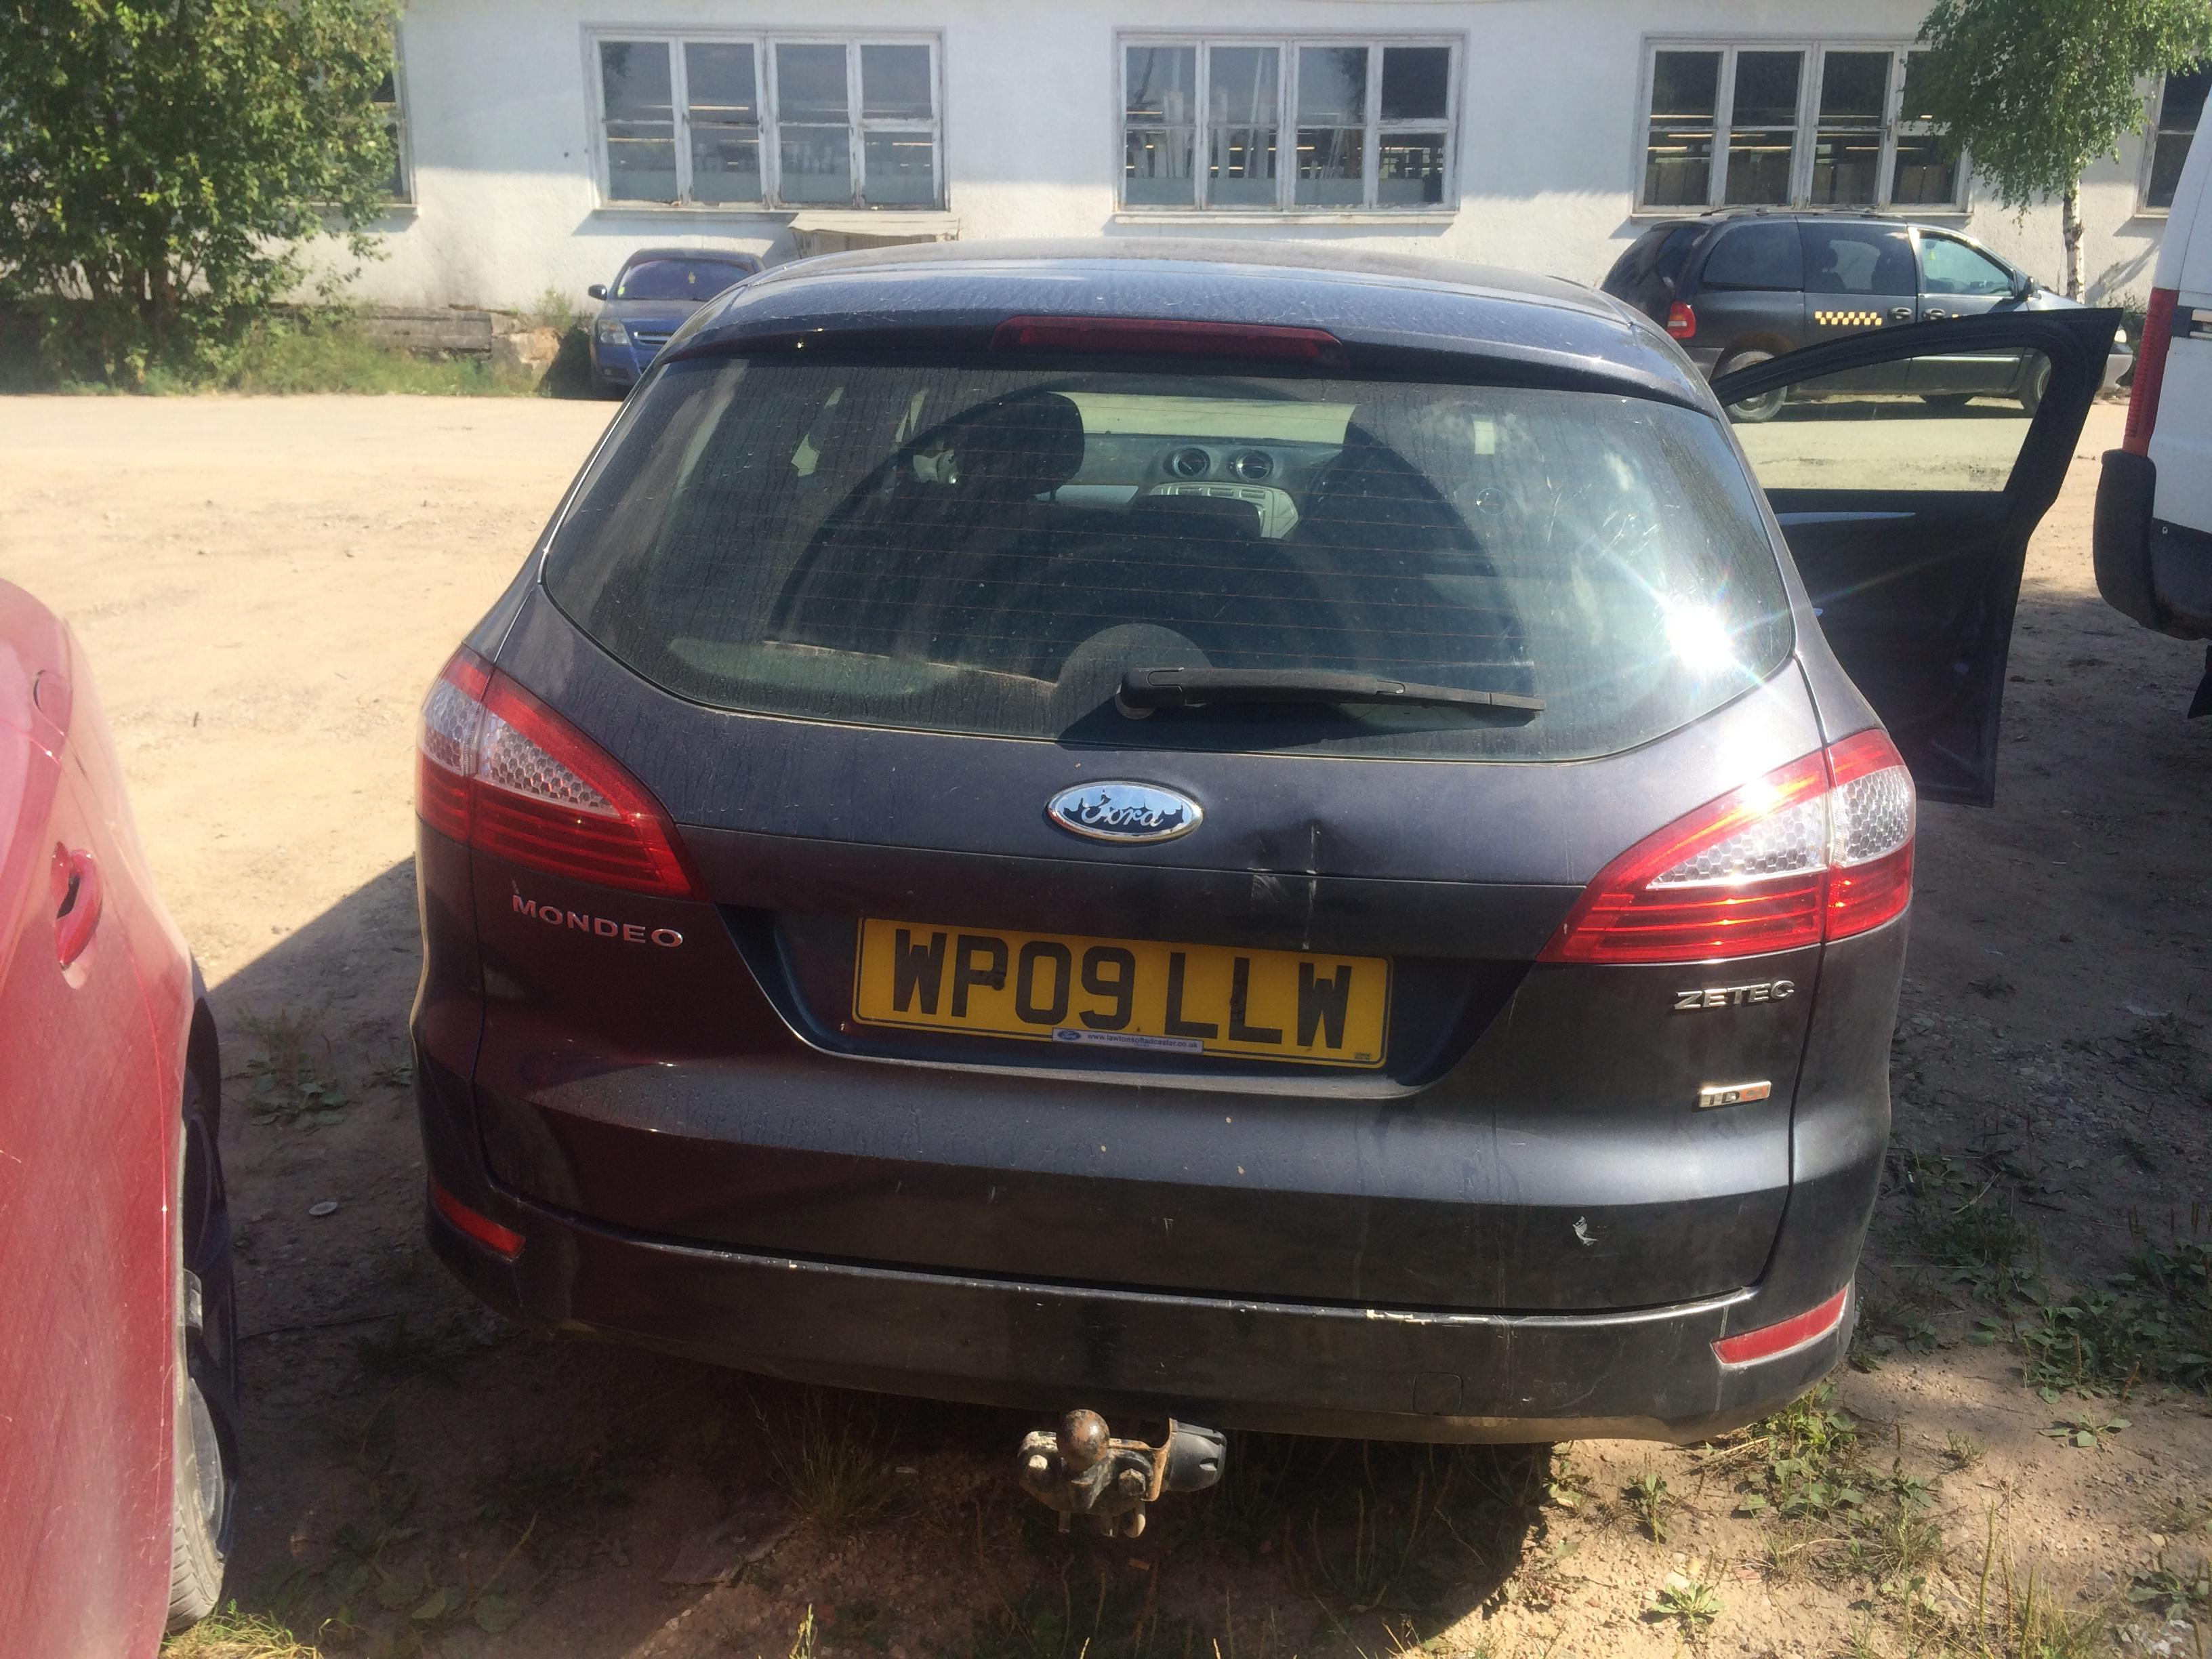 Used Car Parts Foto 8 Ford MONDEO 2009 1.8 Mechanical Universal 4/5 d. Grey 2018-8-02 A3992